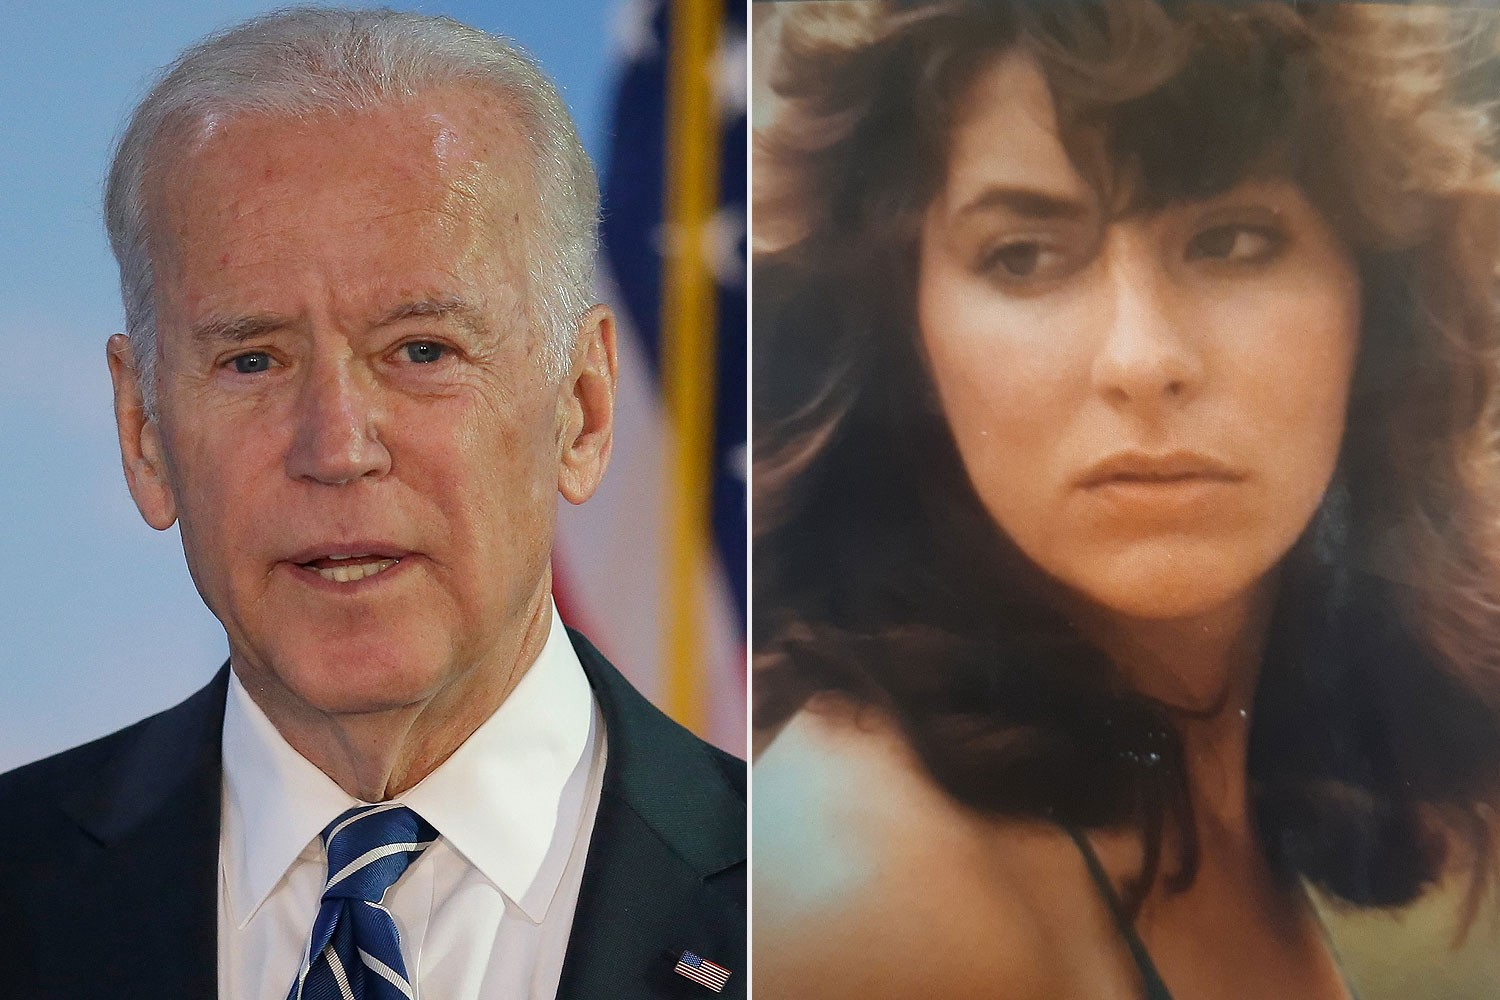 Reade says she was too afraid to accuse Biden of sexual assault in 1993 report